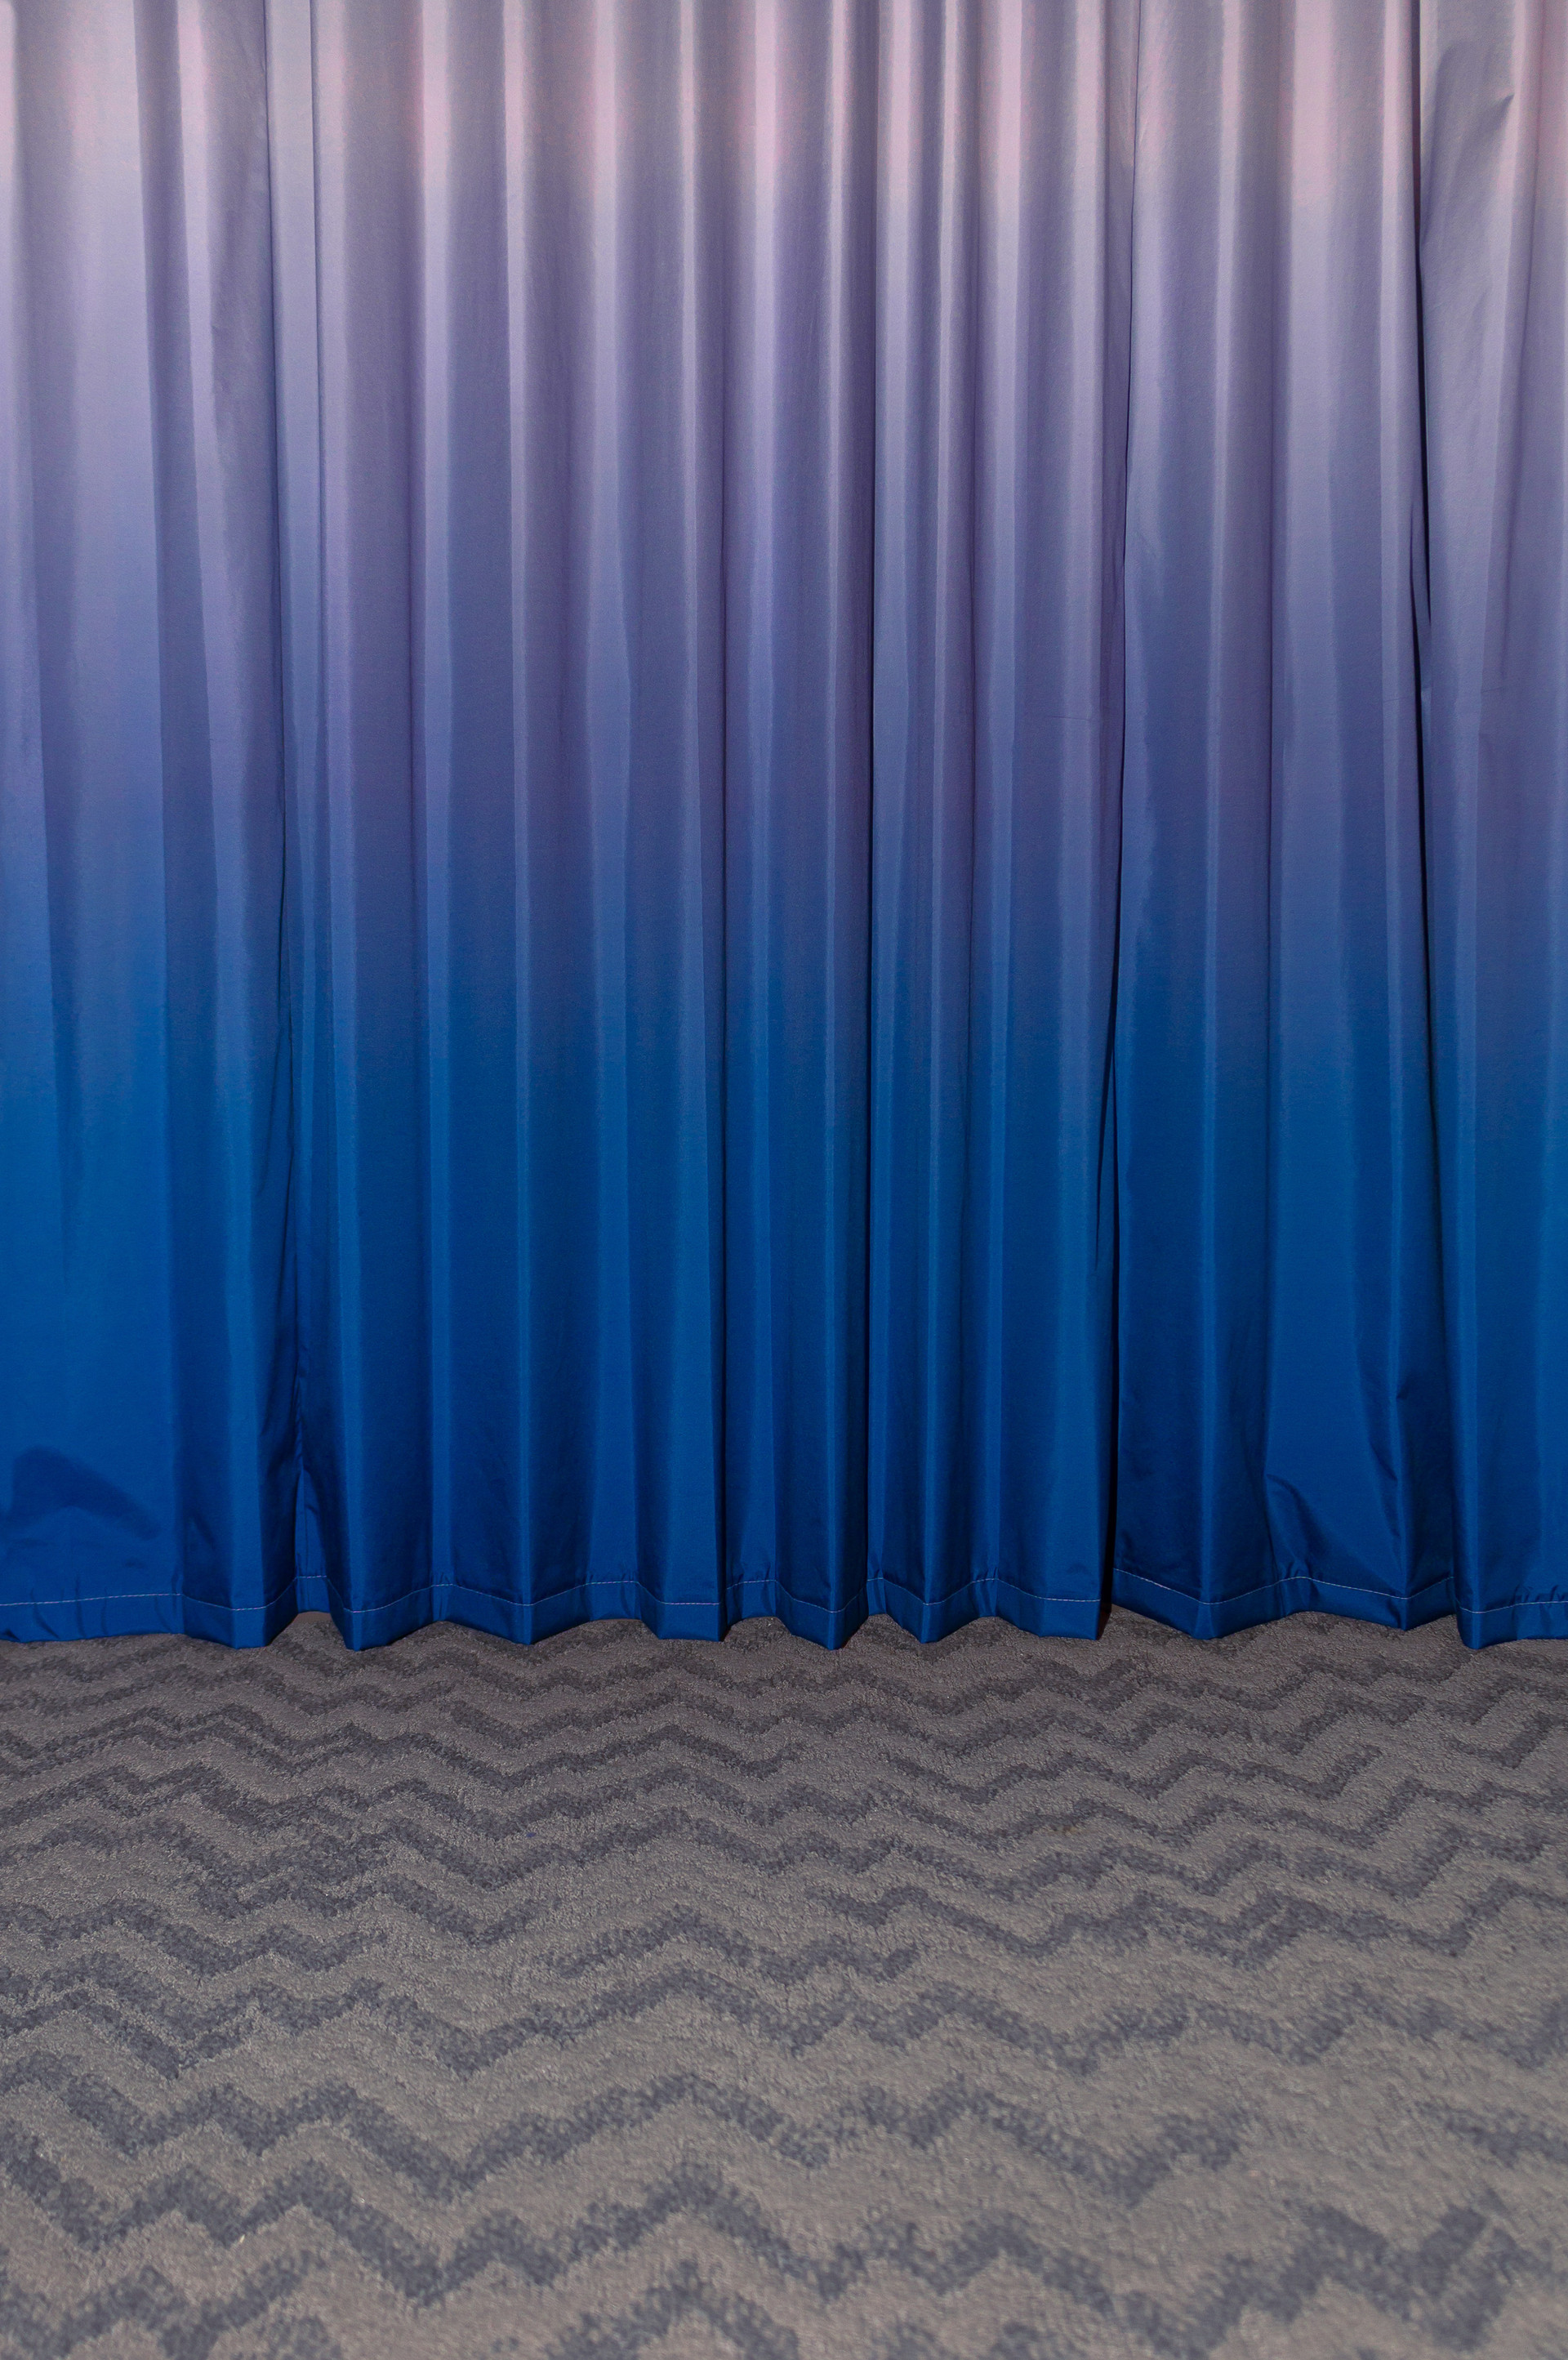 Remodel (gradient curtain)